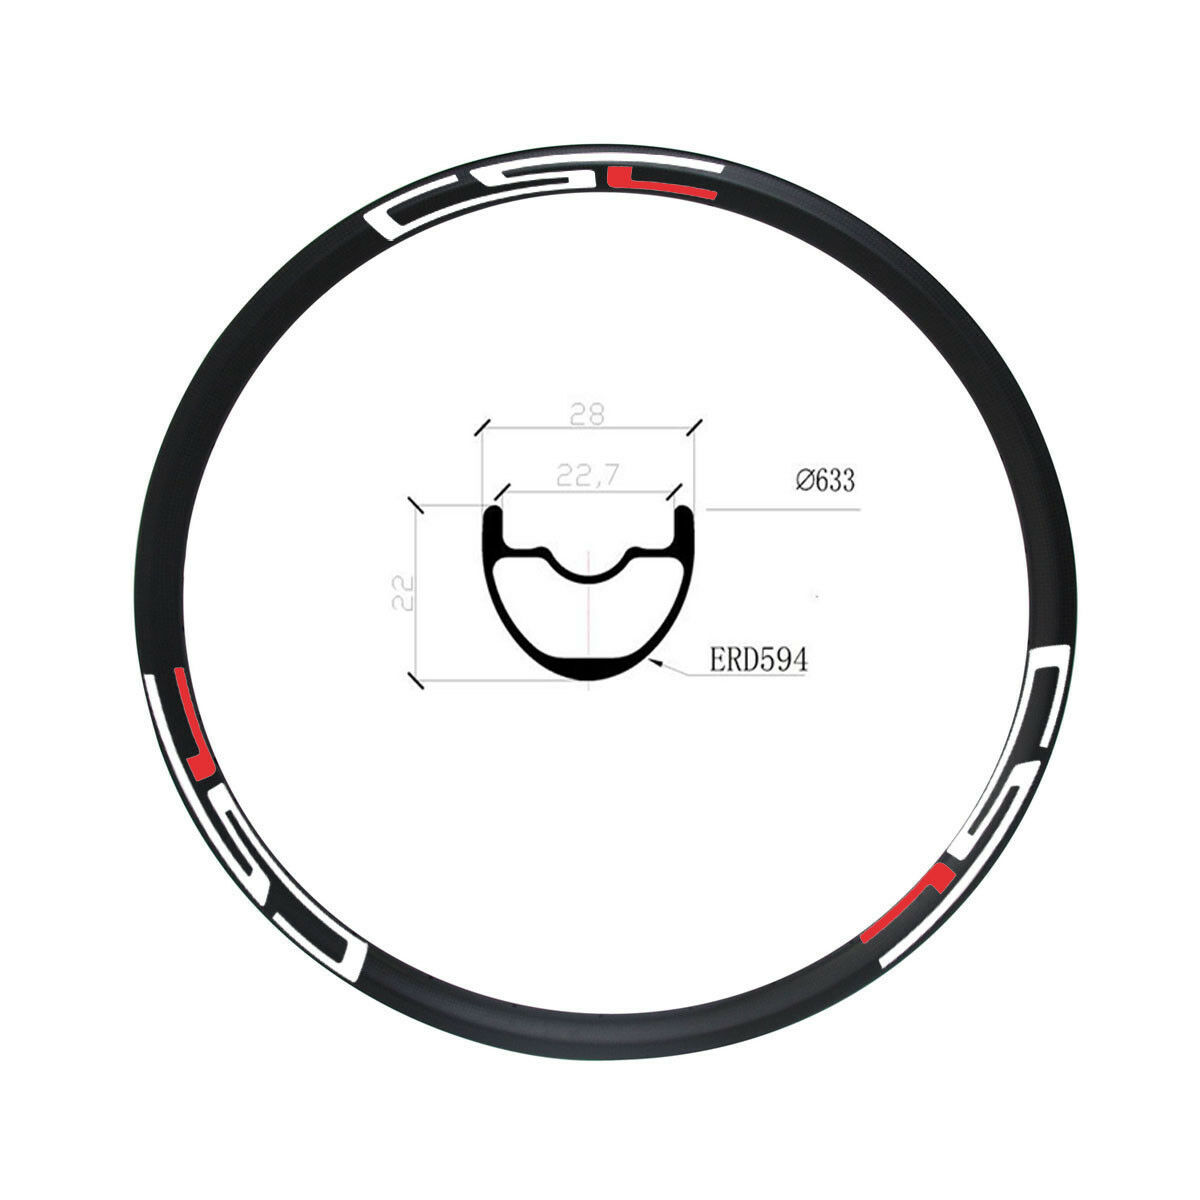 300g  29er MTB carbon Bicycle RIM XC 28mm tubuless Mountain Bike hookless rim  limited edition